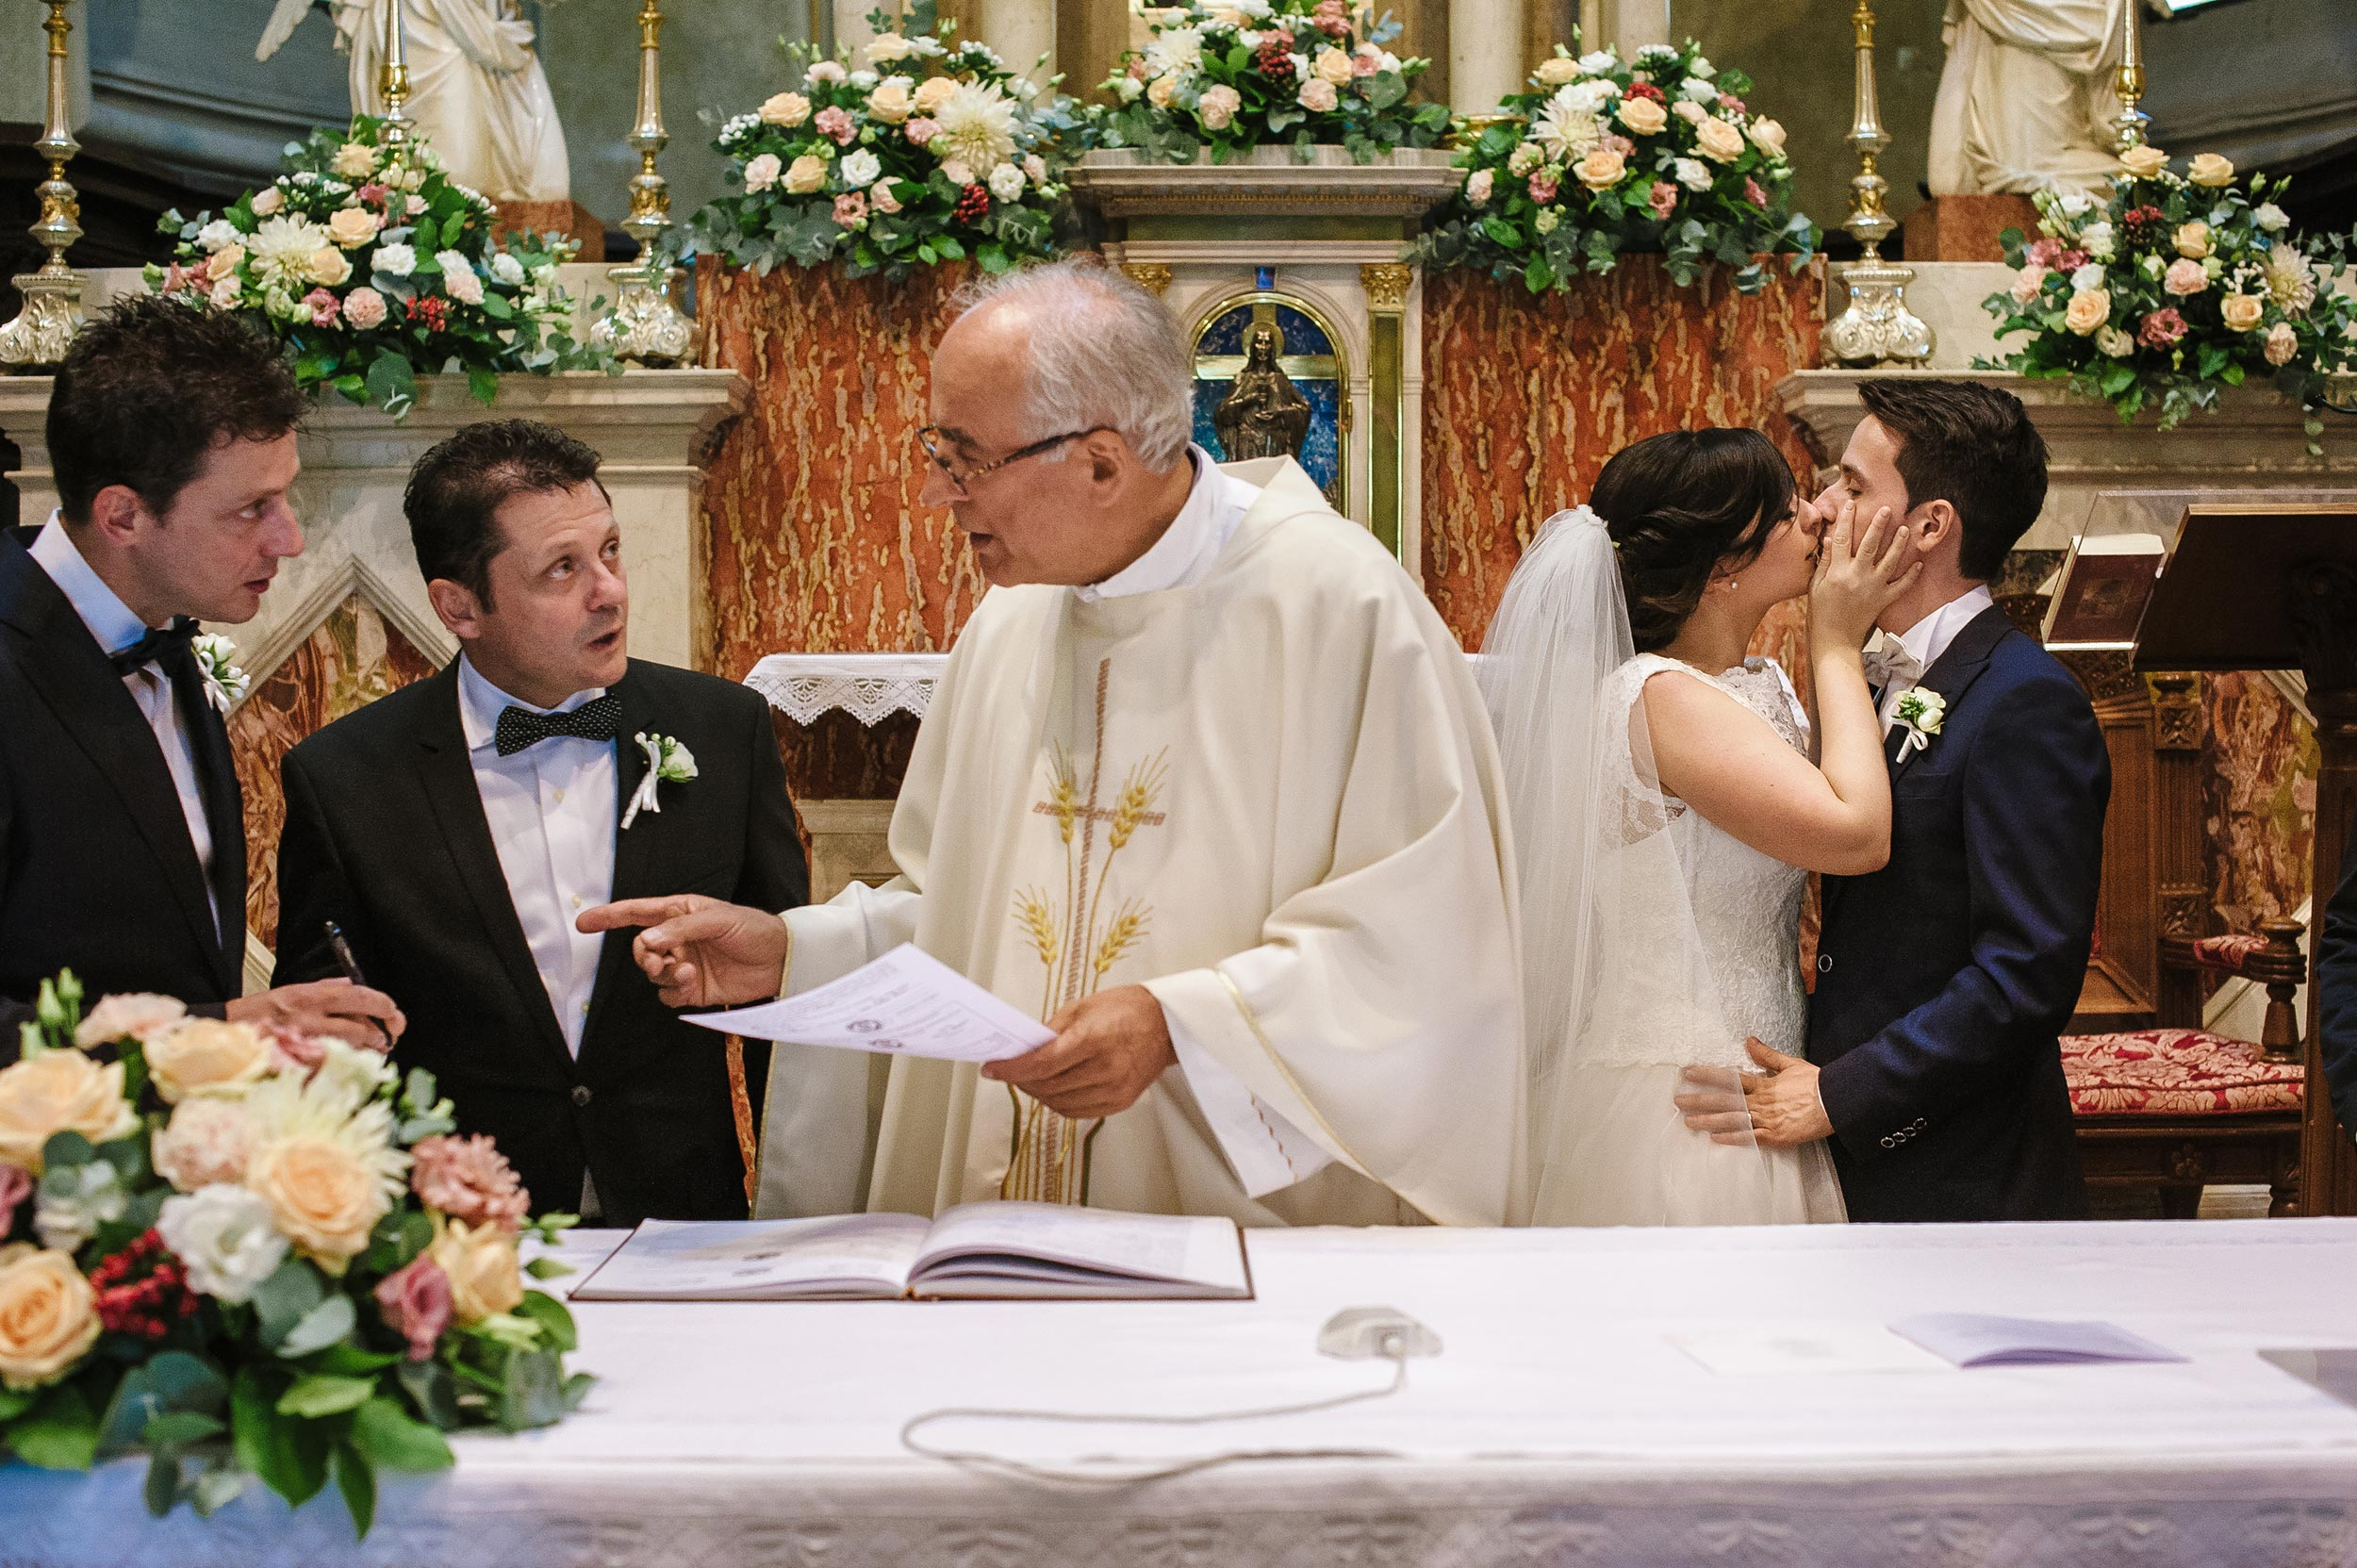 the-bride-kisses-the-groom-in-church-while-witnesses-wait-to-sign.jpg